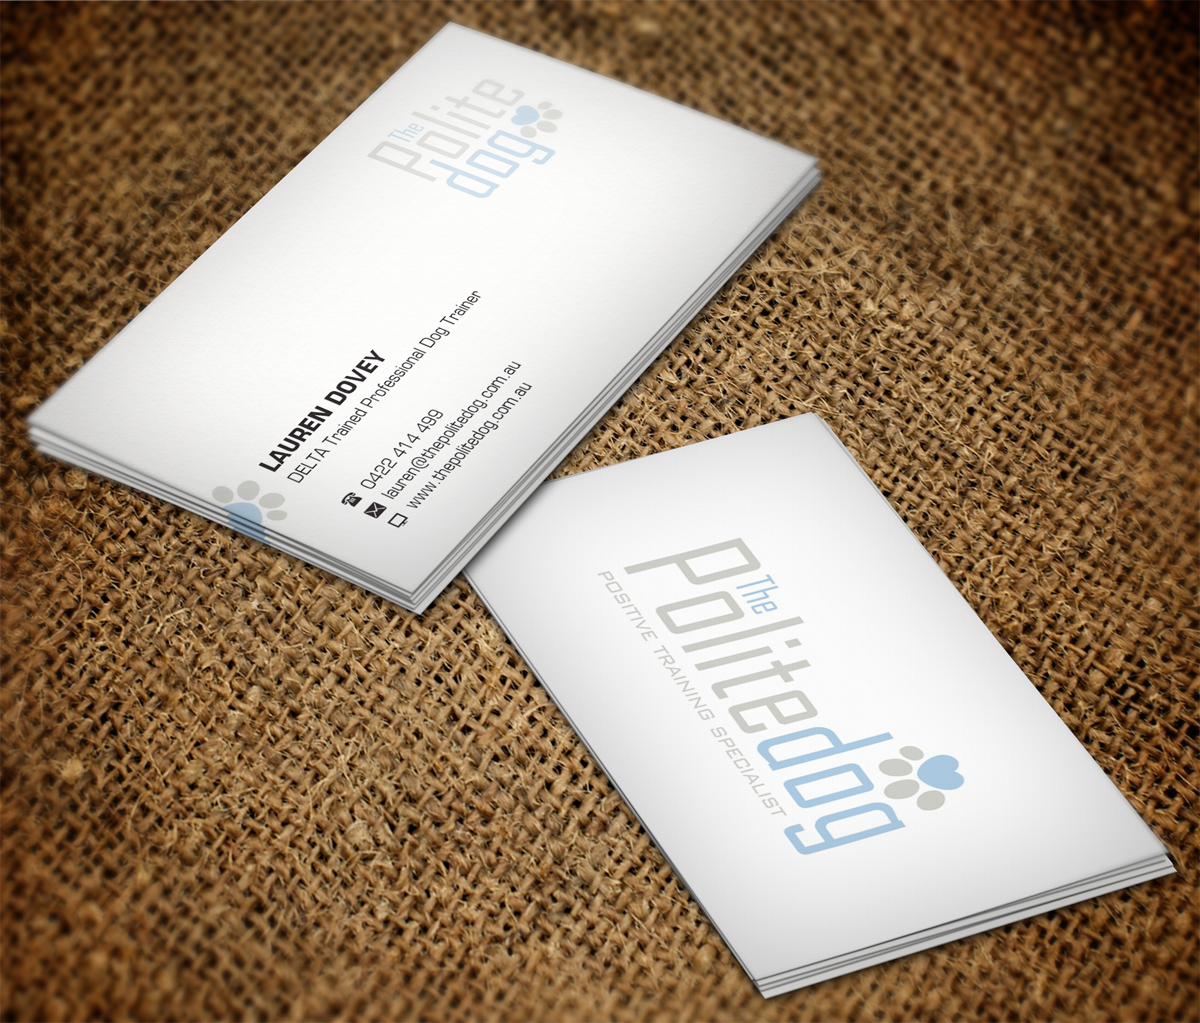 Serious modern dog training business card design for a company by business card design by nuhanenterprise for this project design 4459603 colourmoves